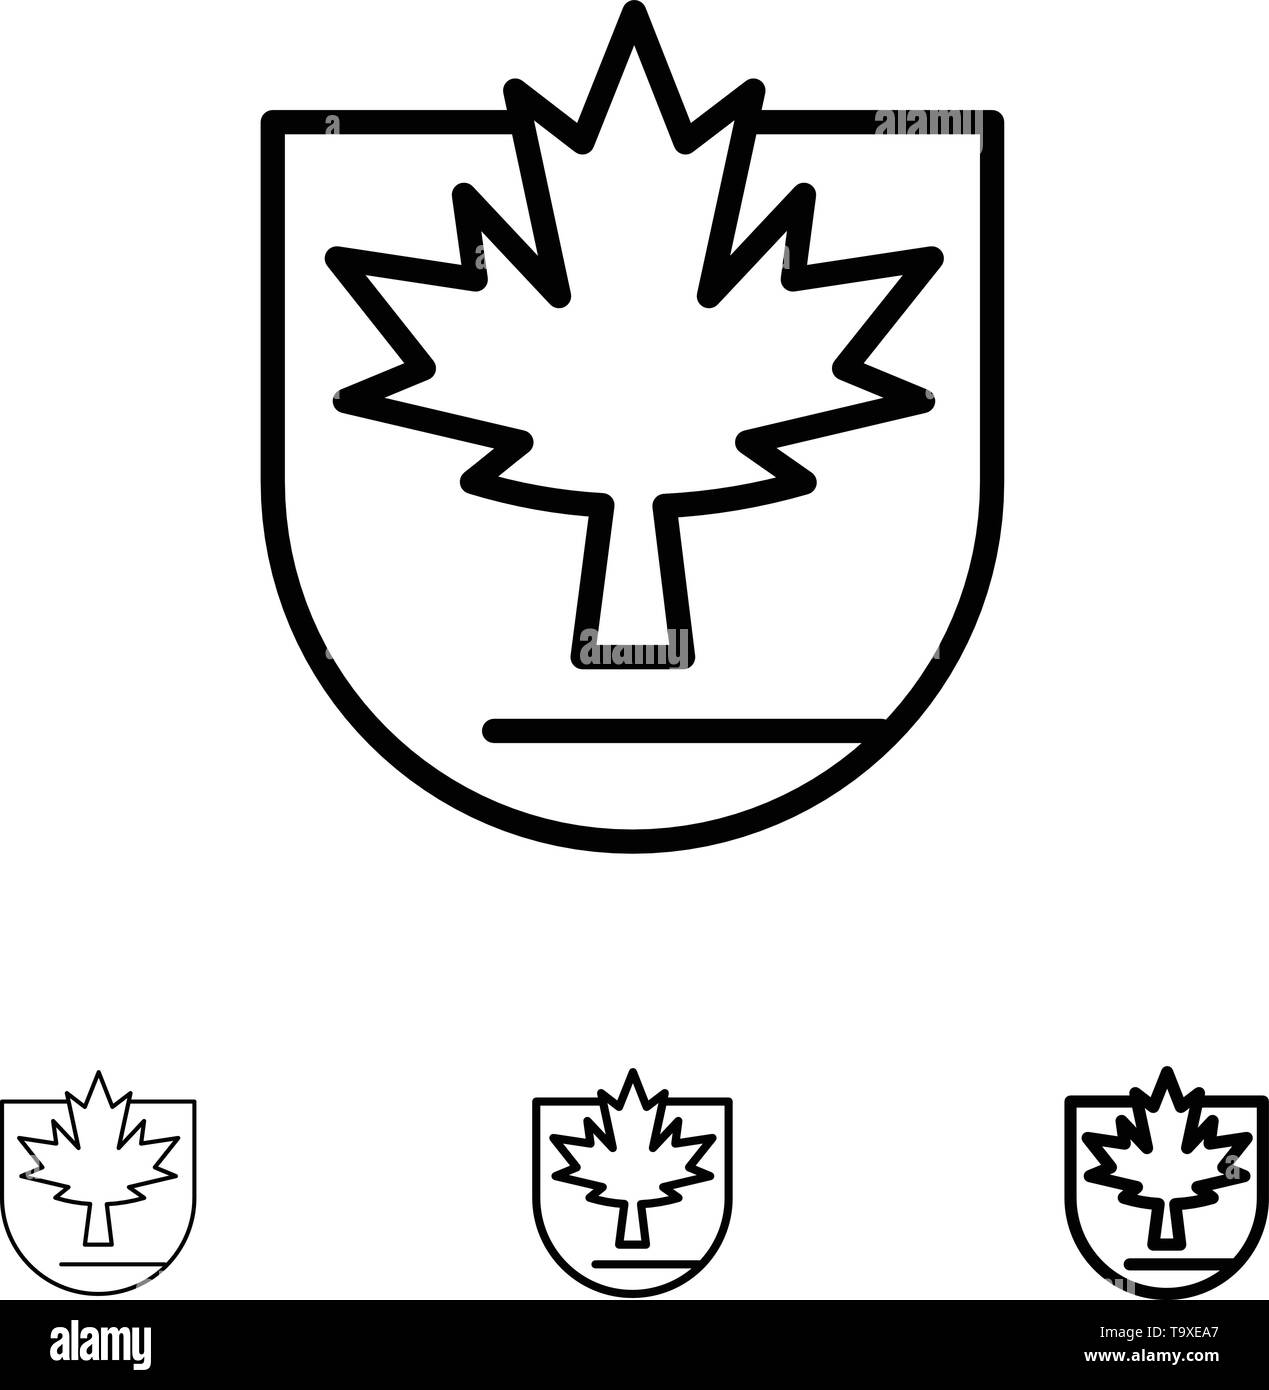 Security, Leaf, Canada, Shield Bold and thin black line icon set - Stock Image